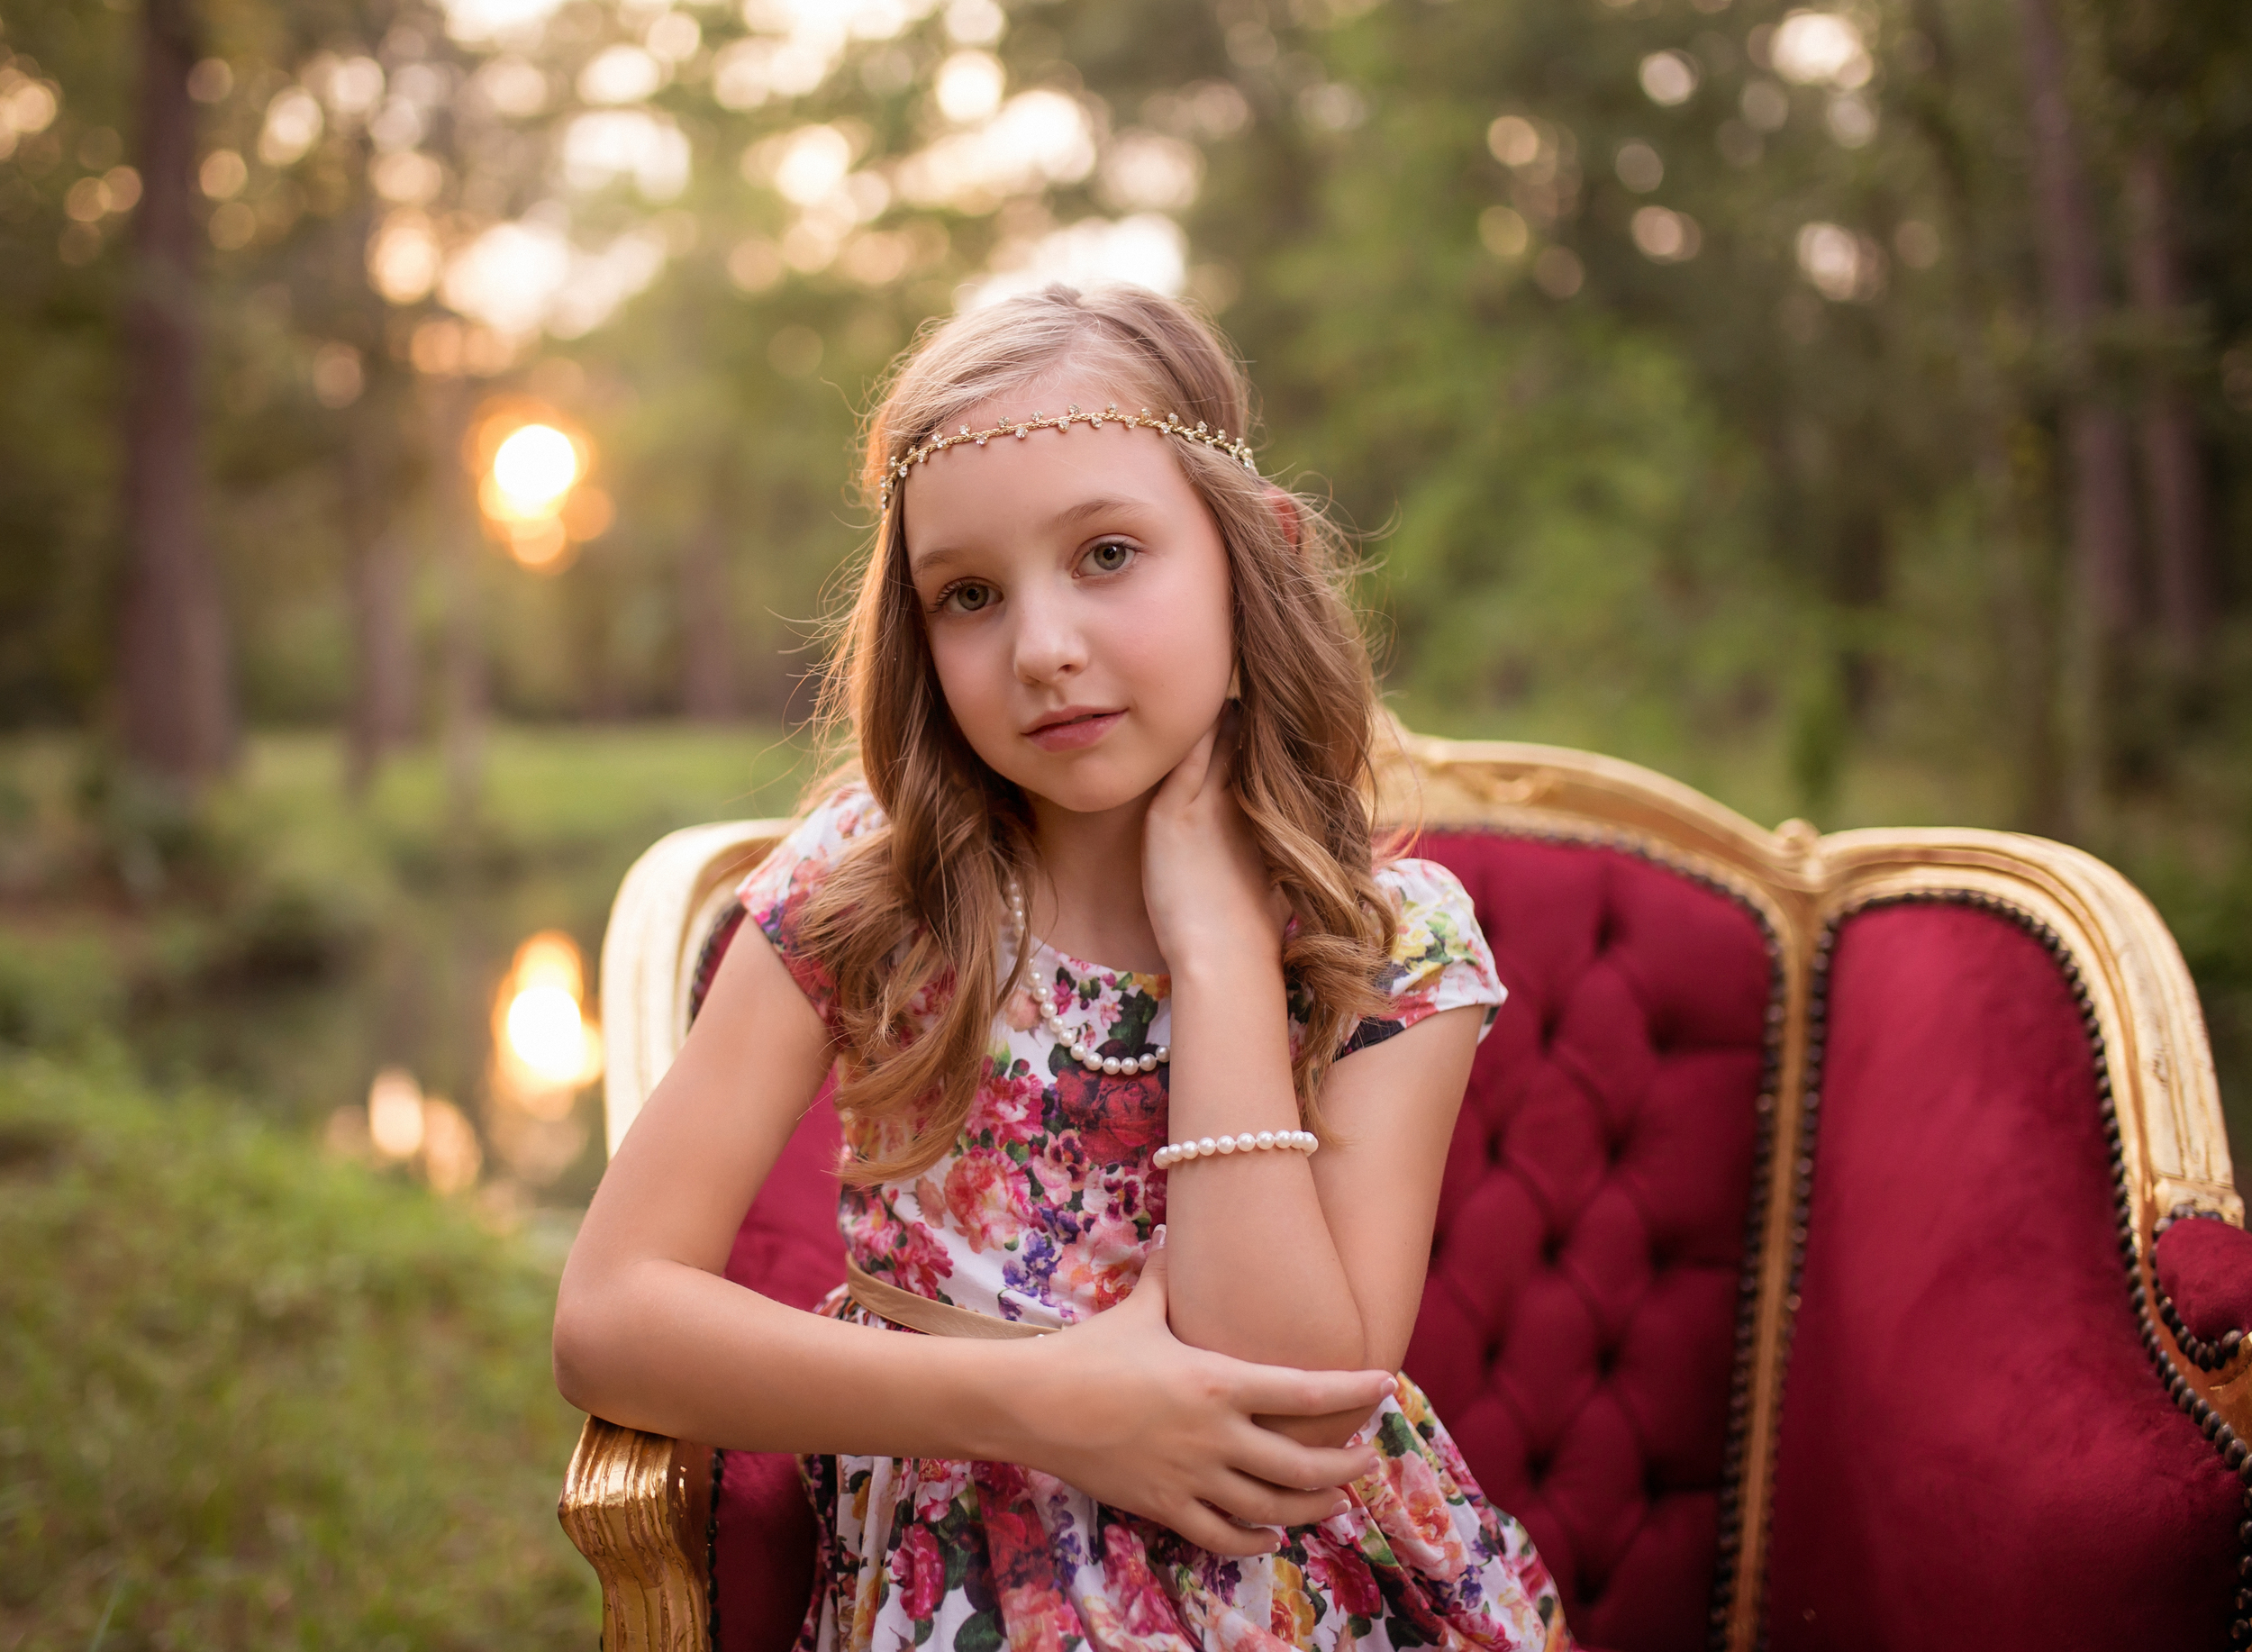 woodlands-tx-child-family-photographer-sunset-session-golden-hour-vintage-chair_0235 (1).jpg